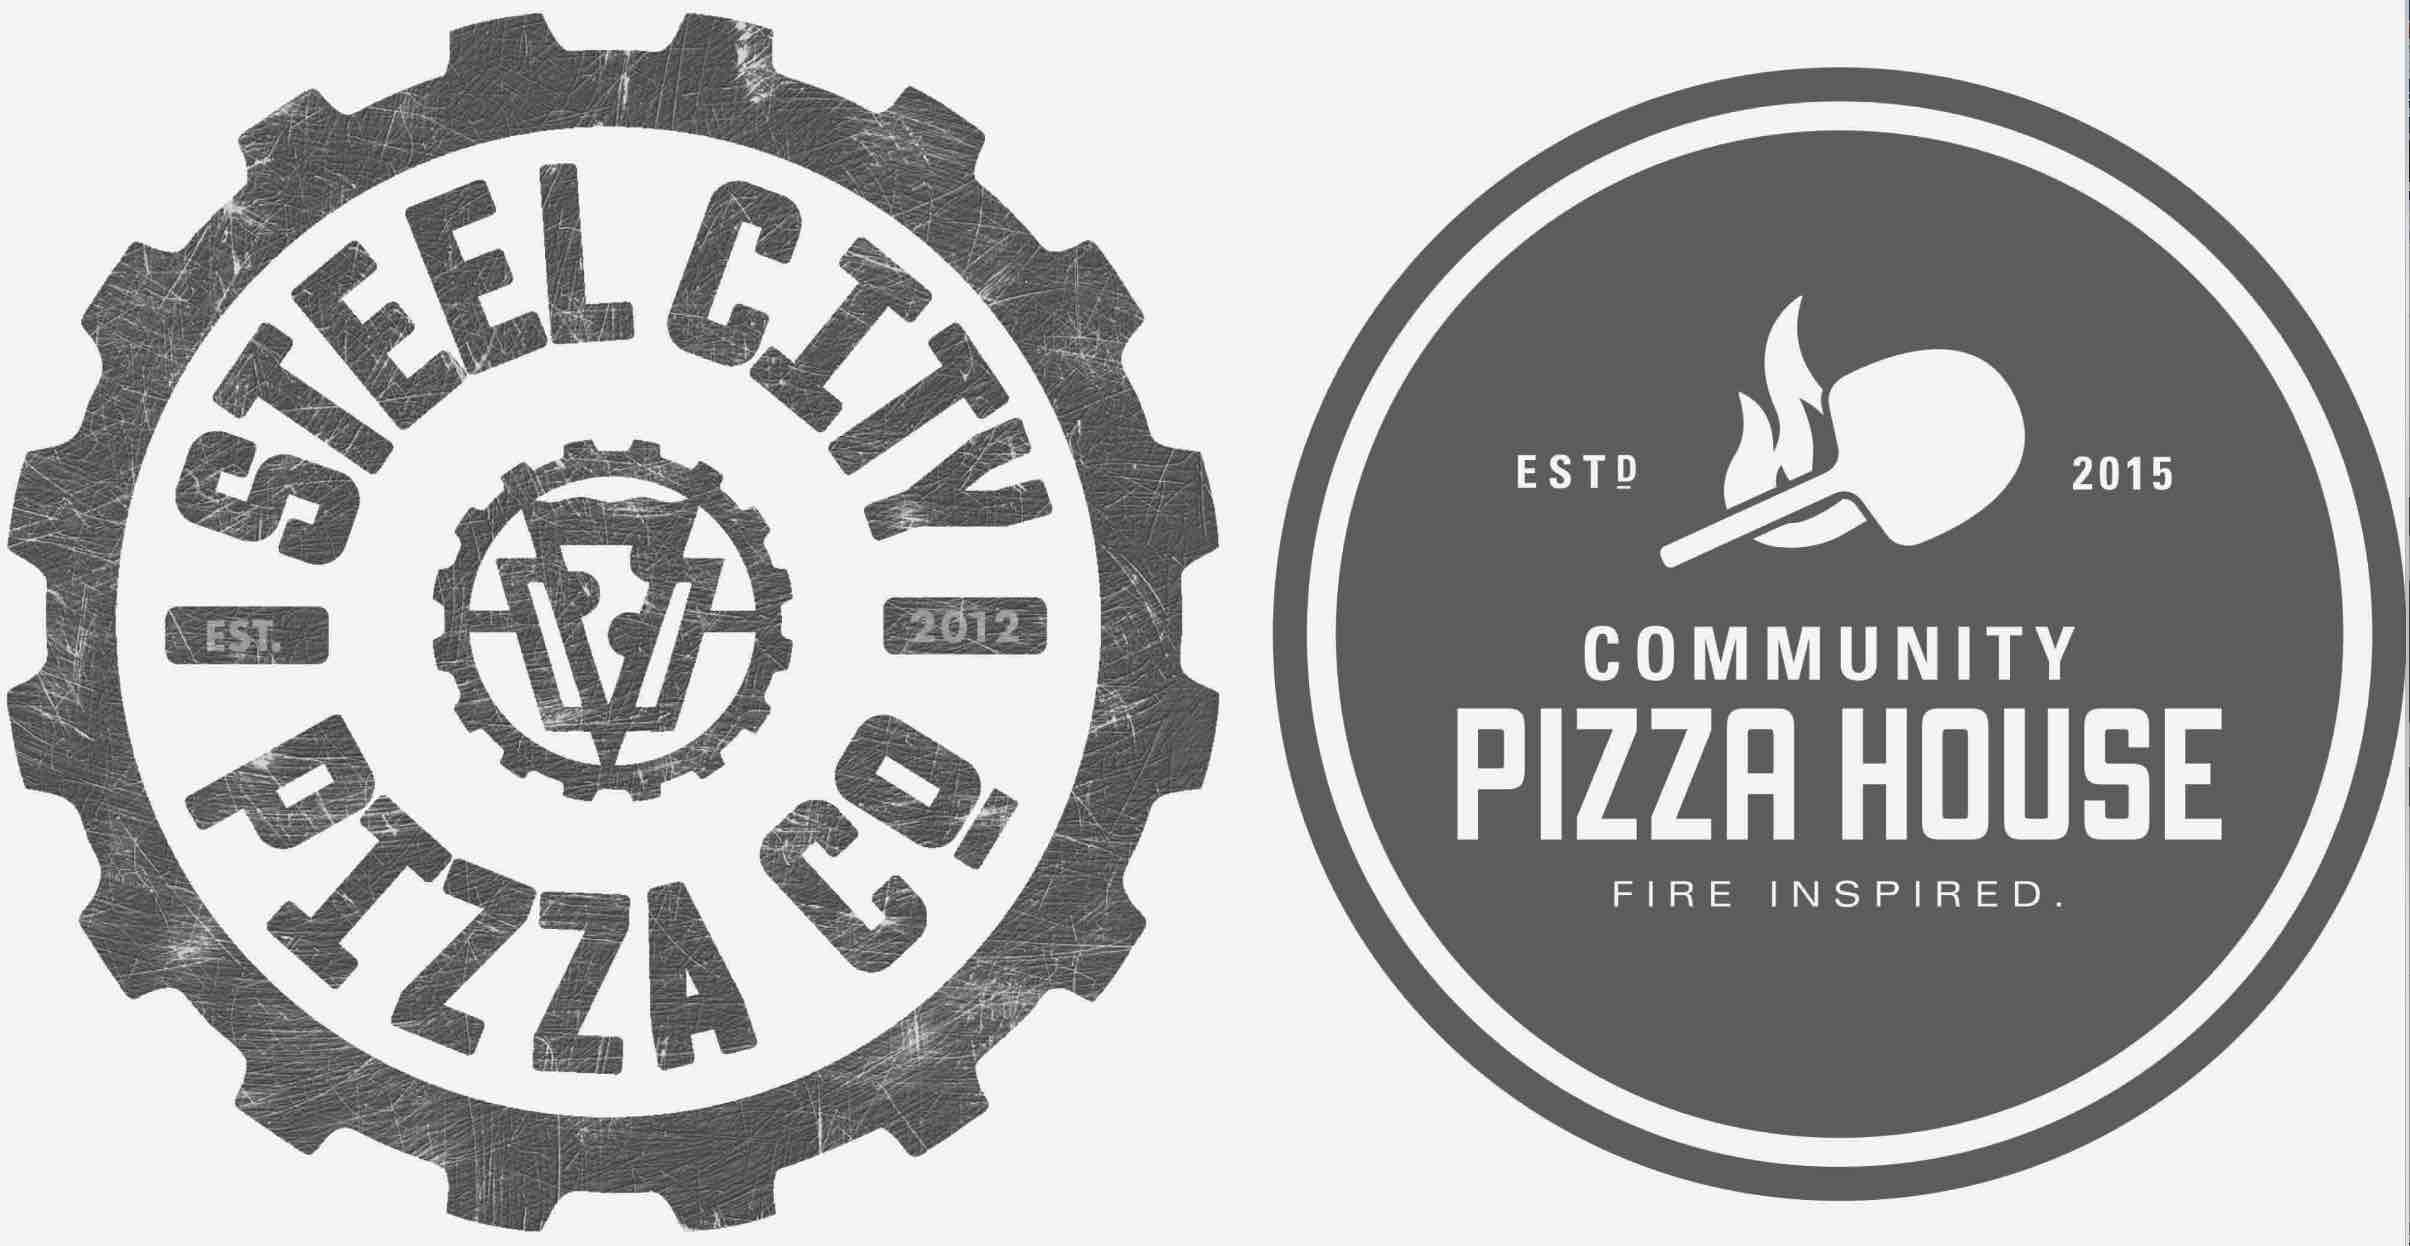 Steel City & Community Pizza Group